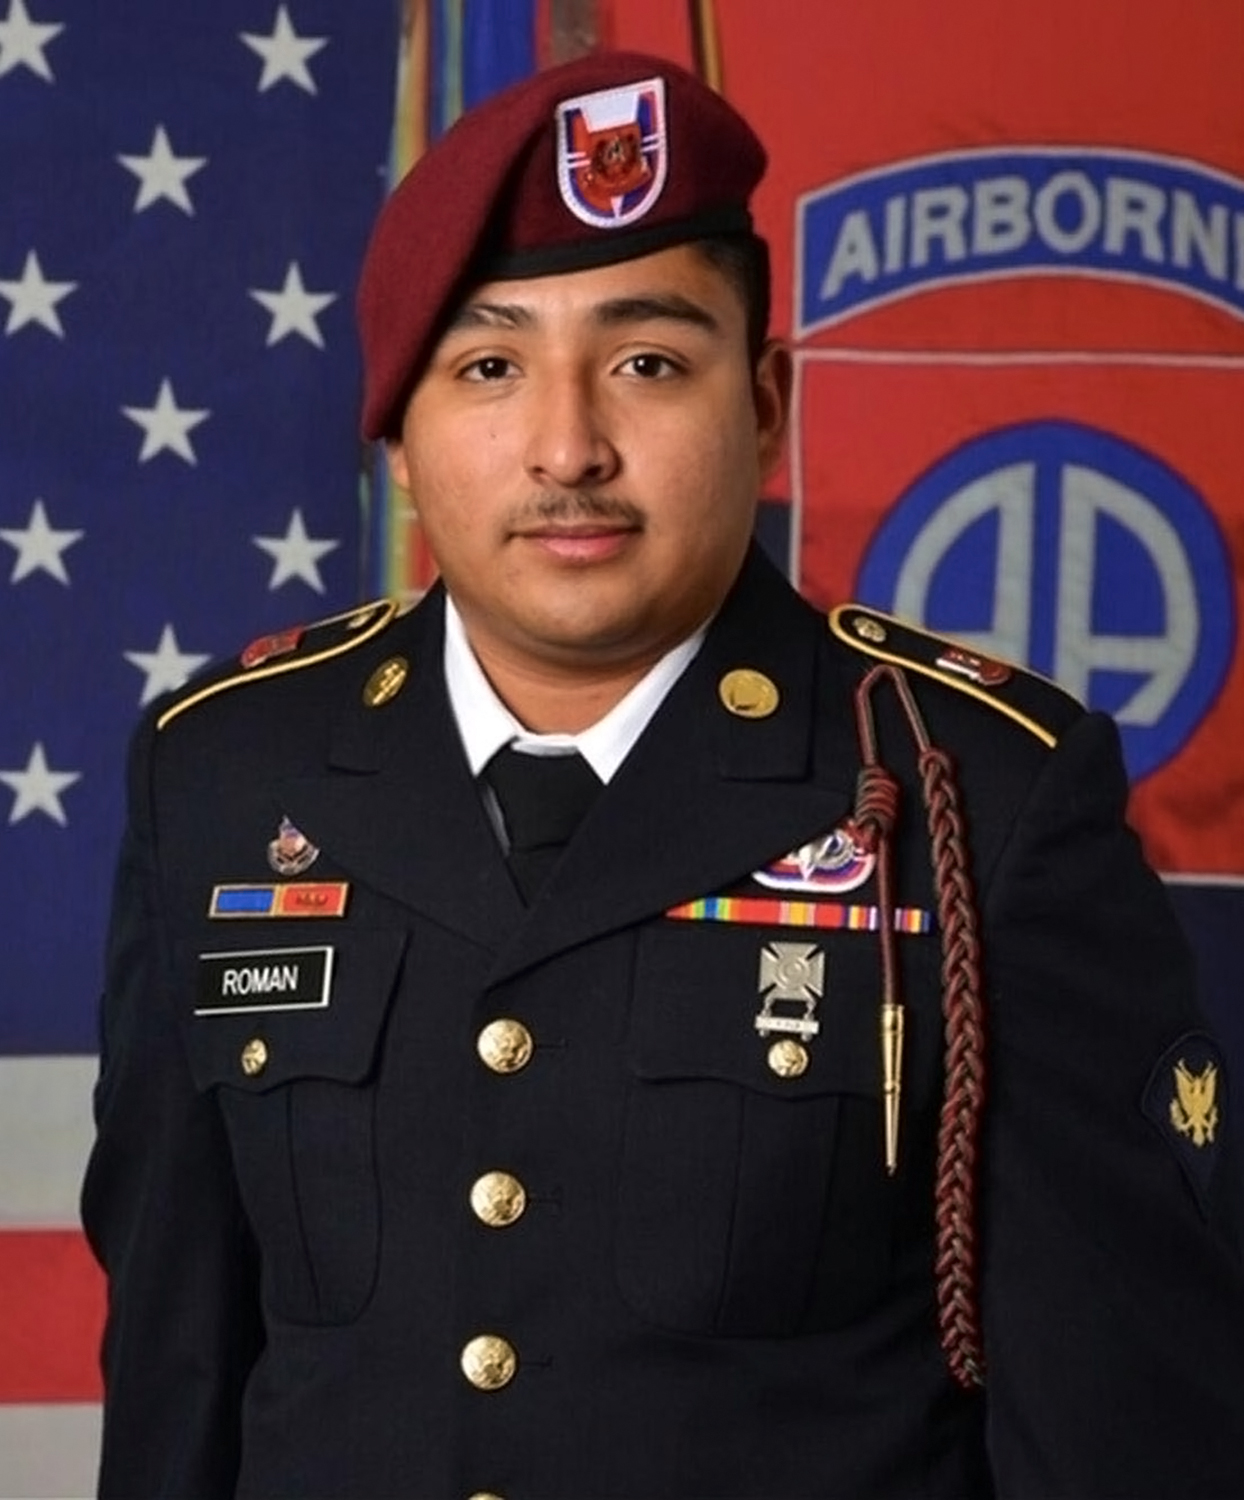 Spc. Enrique Roman-Martinez, a paratrooper in the 82nd Airborne Division at Fort Bragg, North Carolina whose remains were discovered after they washed ashore near Cape Lookout National Seashore on May 29, 2020. (U.S. Army photo)